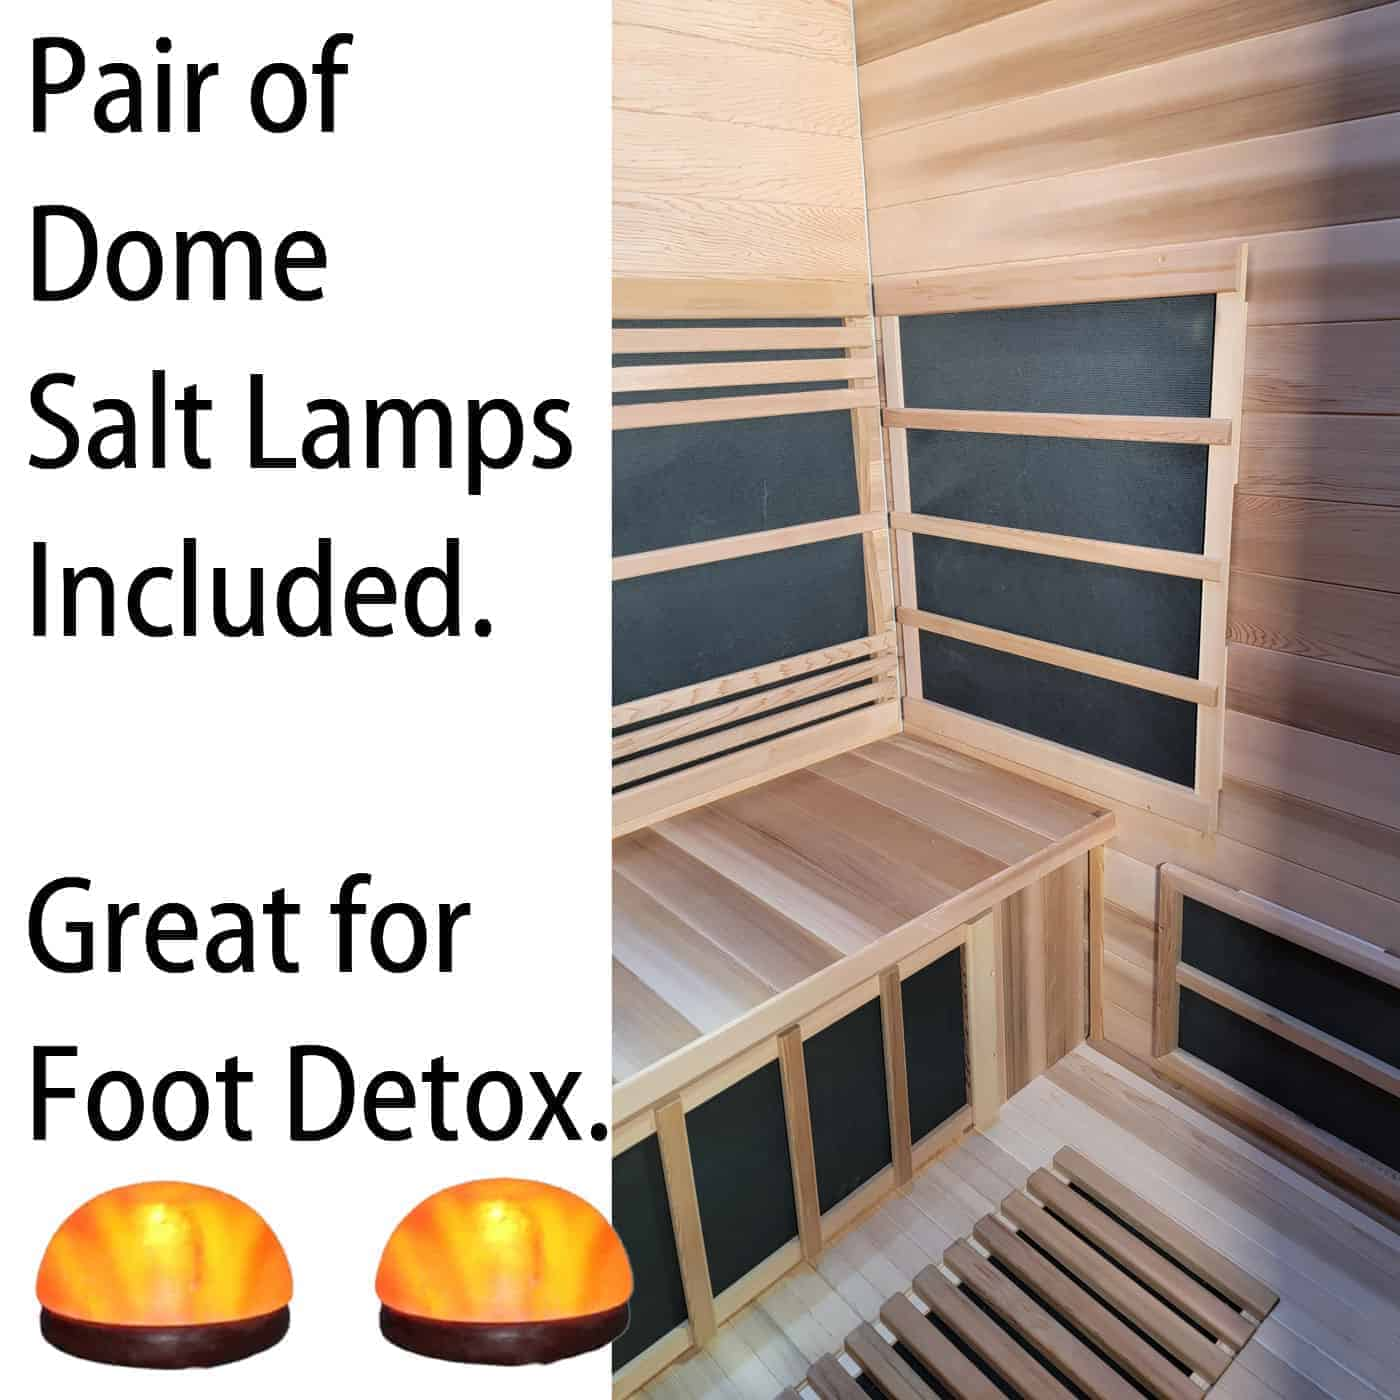 pair of domes lamps for foot detox